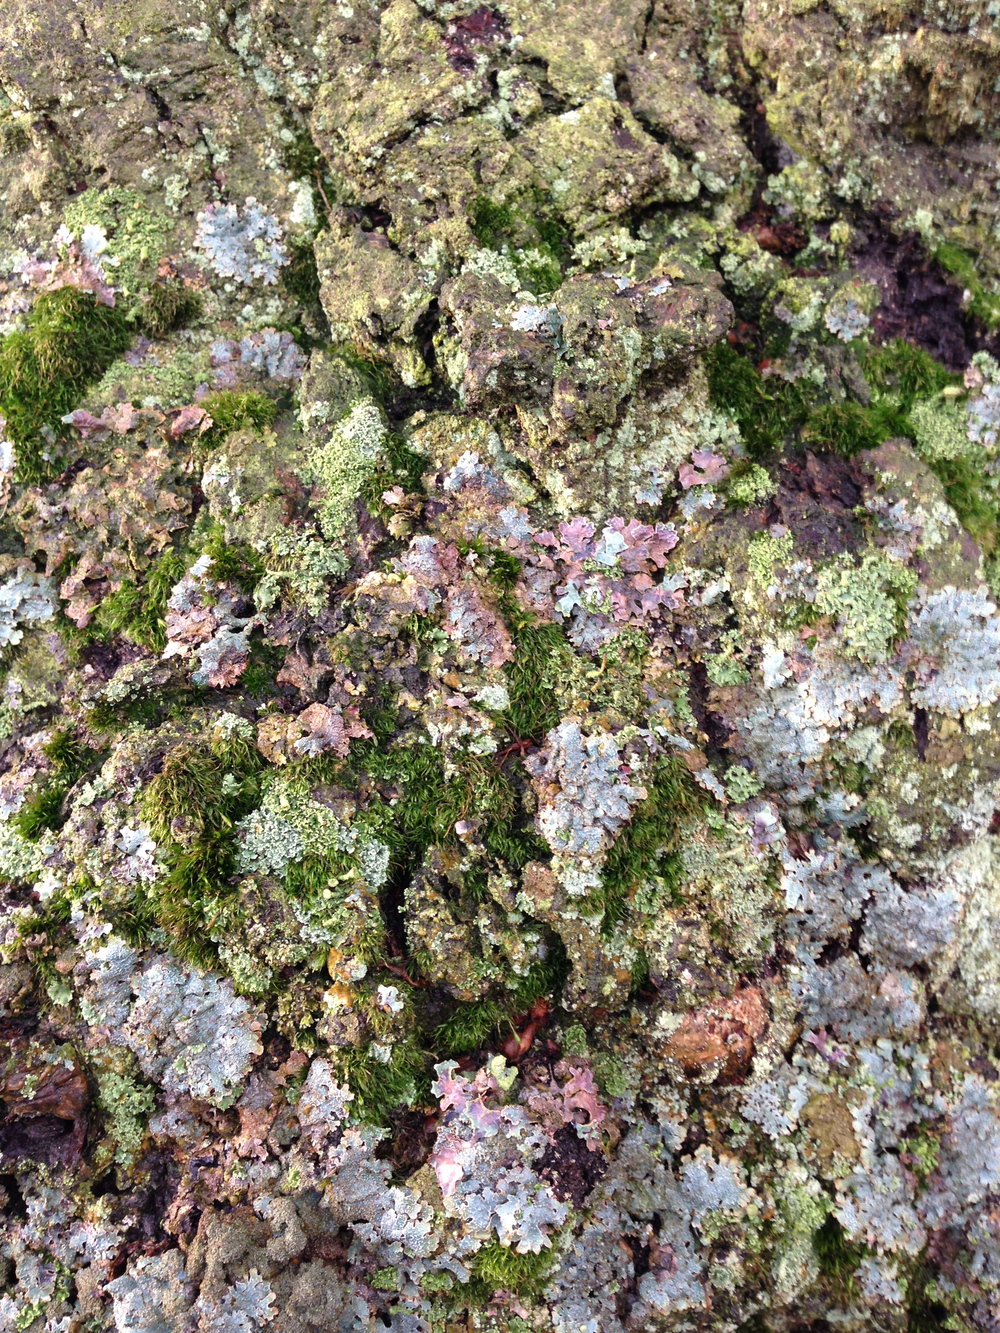 Moss, Lichen and Bark, Hardcastle Crags, Calderdale